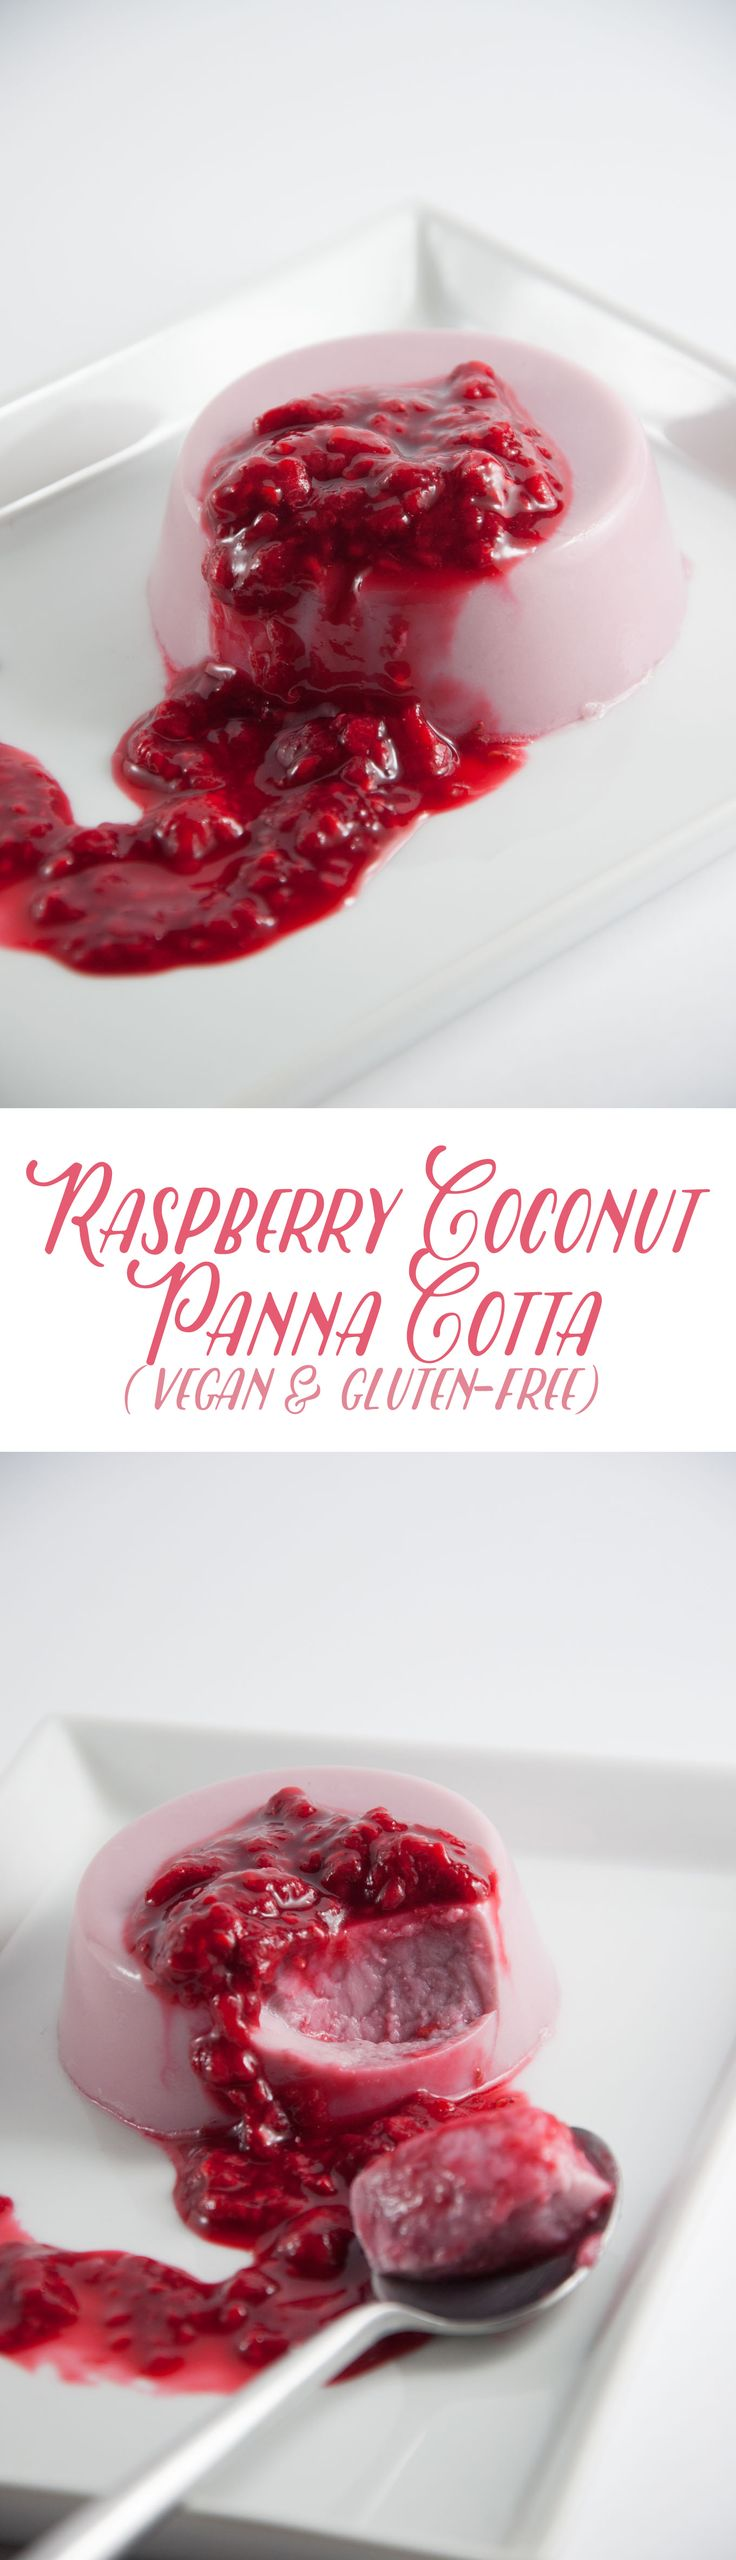 WE ♥ THIS!  ----------------------------- Original Pin Caption: Vegan Raspberry Coconut Panna Cotta | Elephantastic Vegan